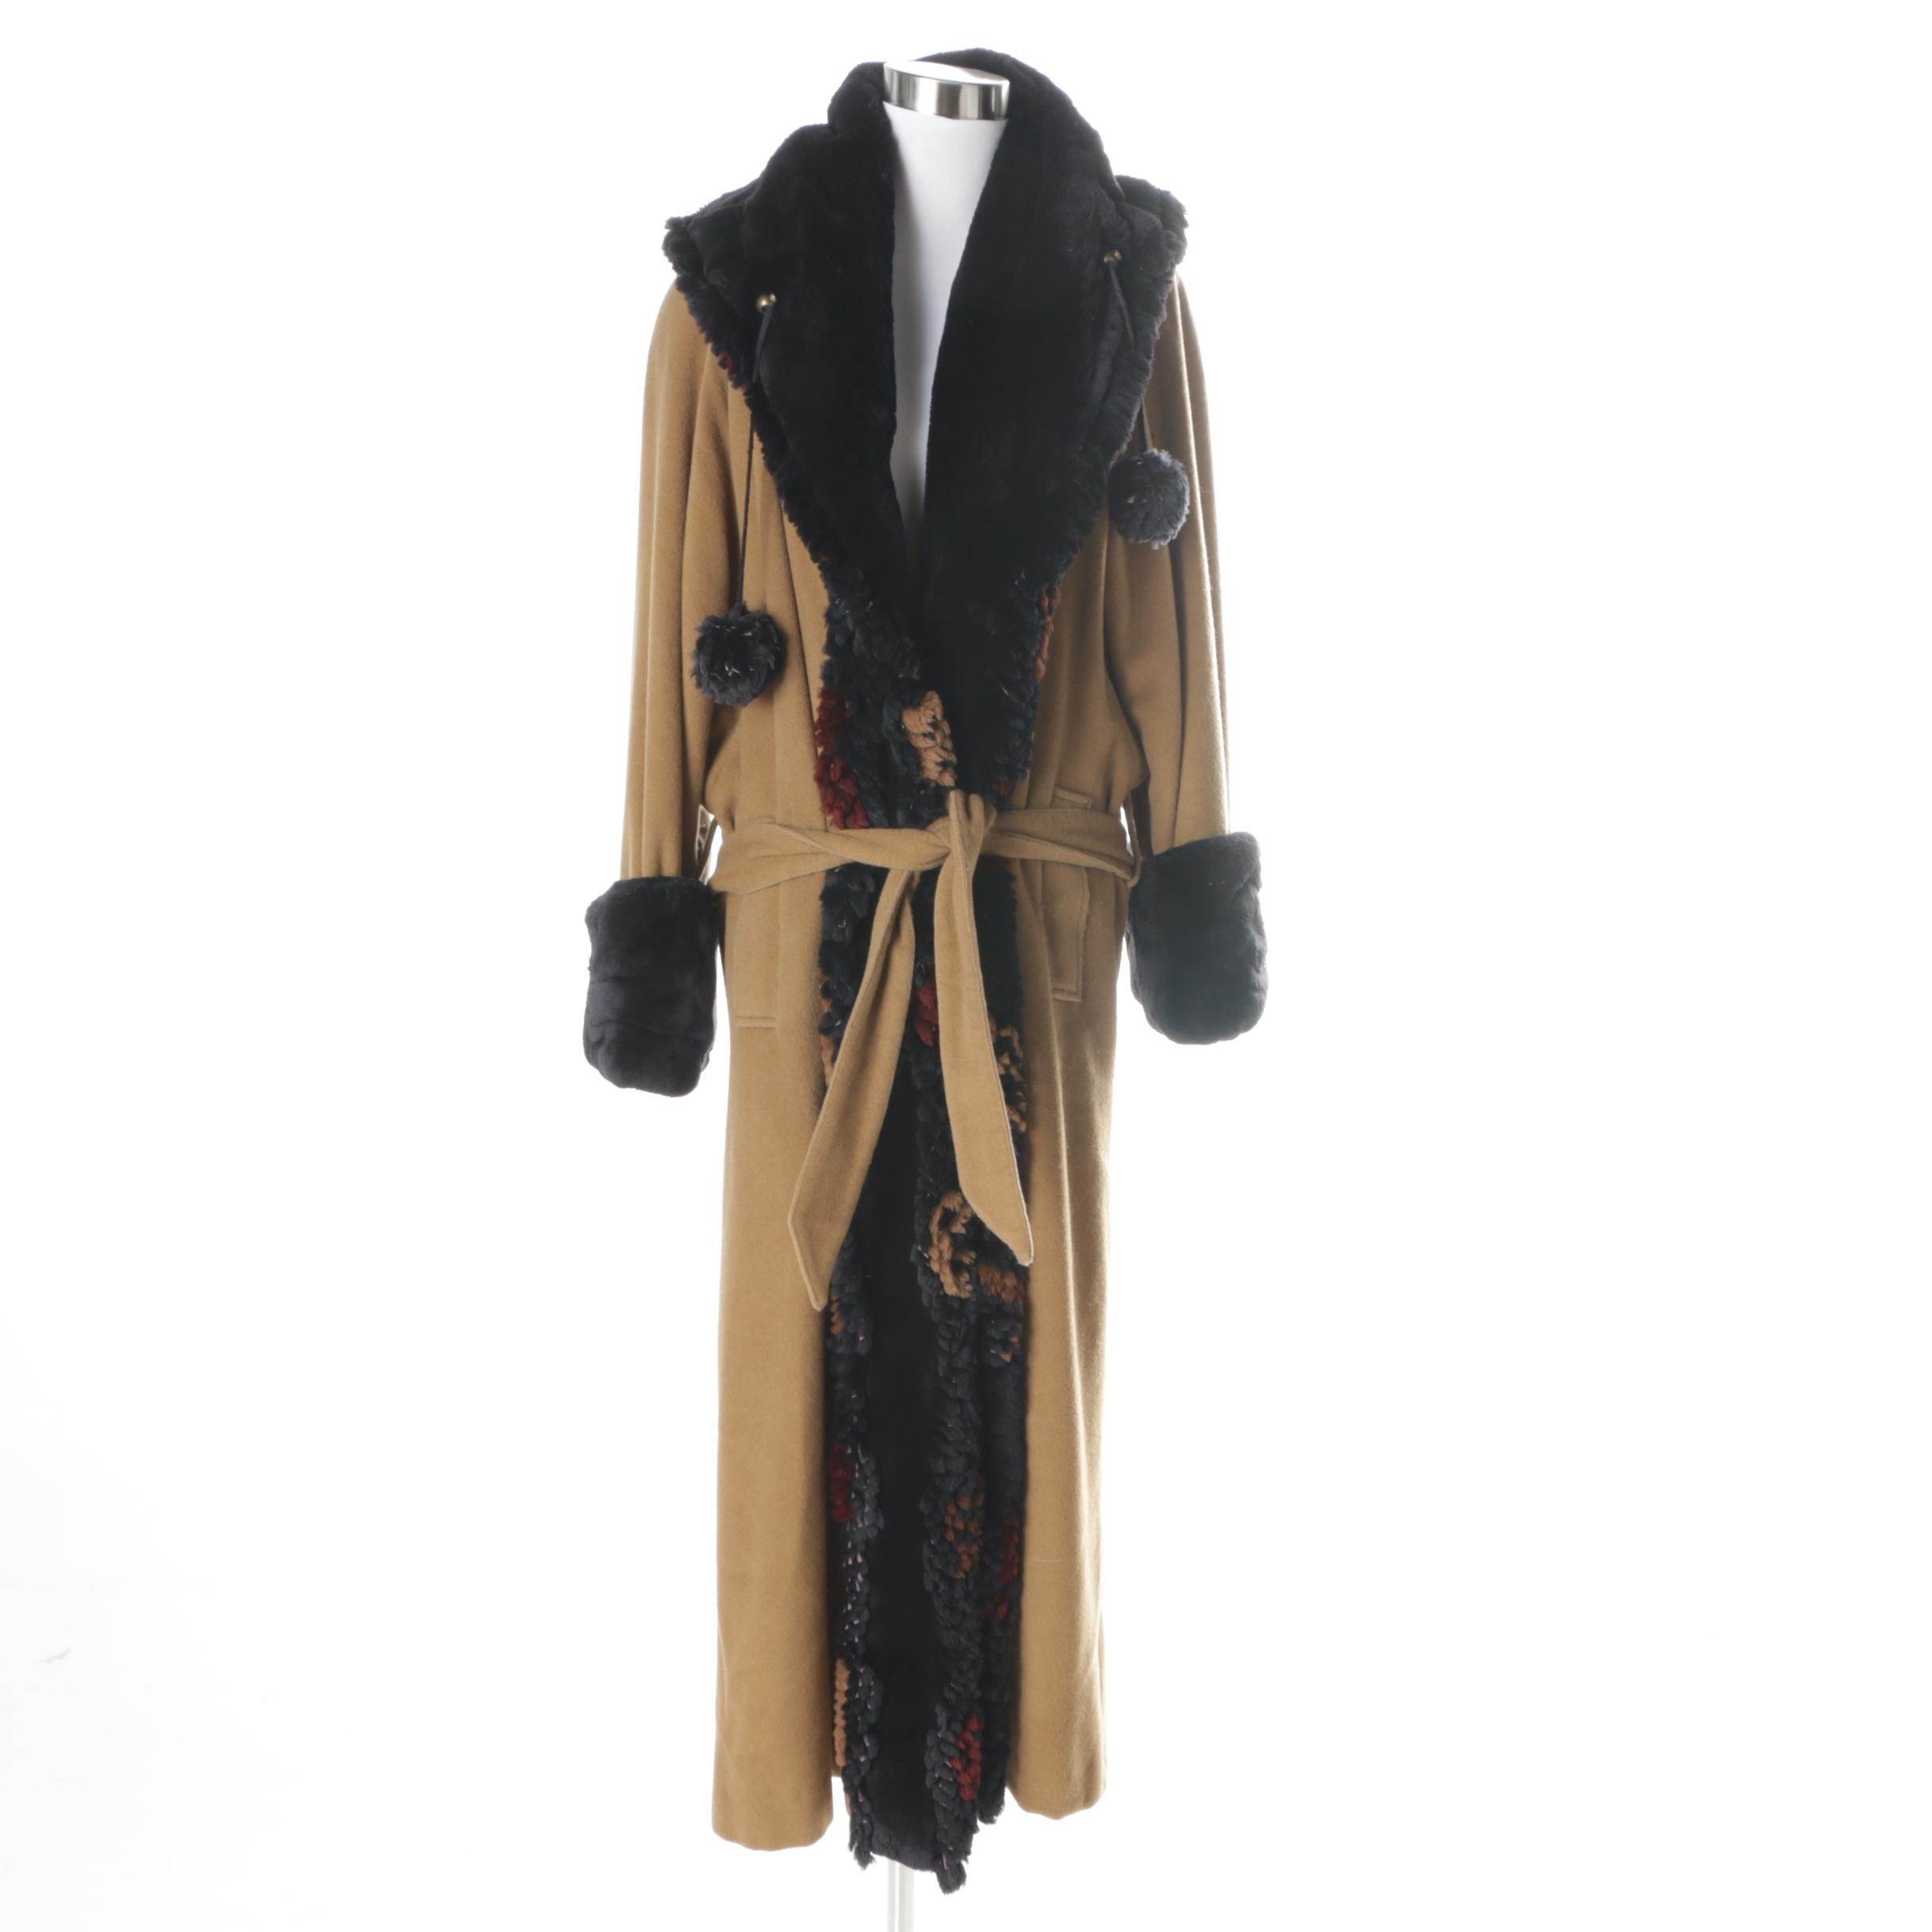 Vintage Camelhair Coat with Sheared Beaver Fur Trim